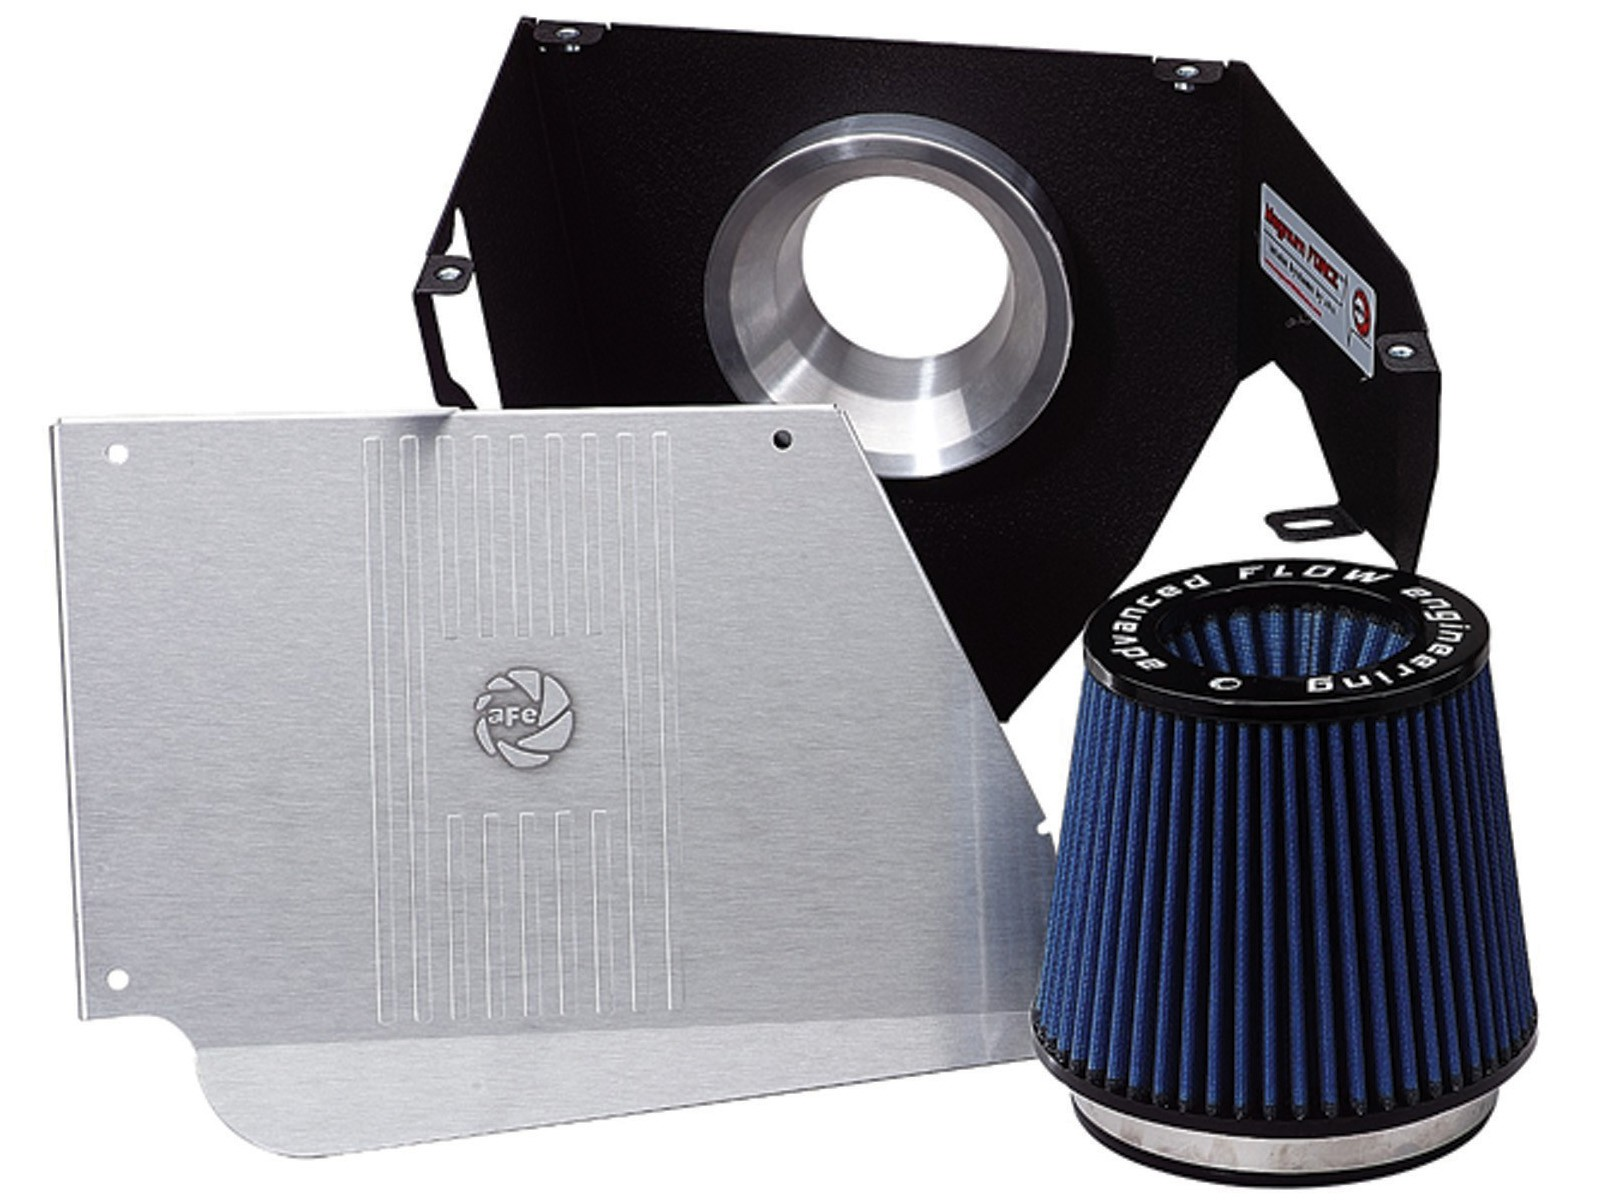 aFe POWER 54-10451 Magnum FORCE Stage-1 Pro 5R Cold Air Intake System